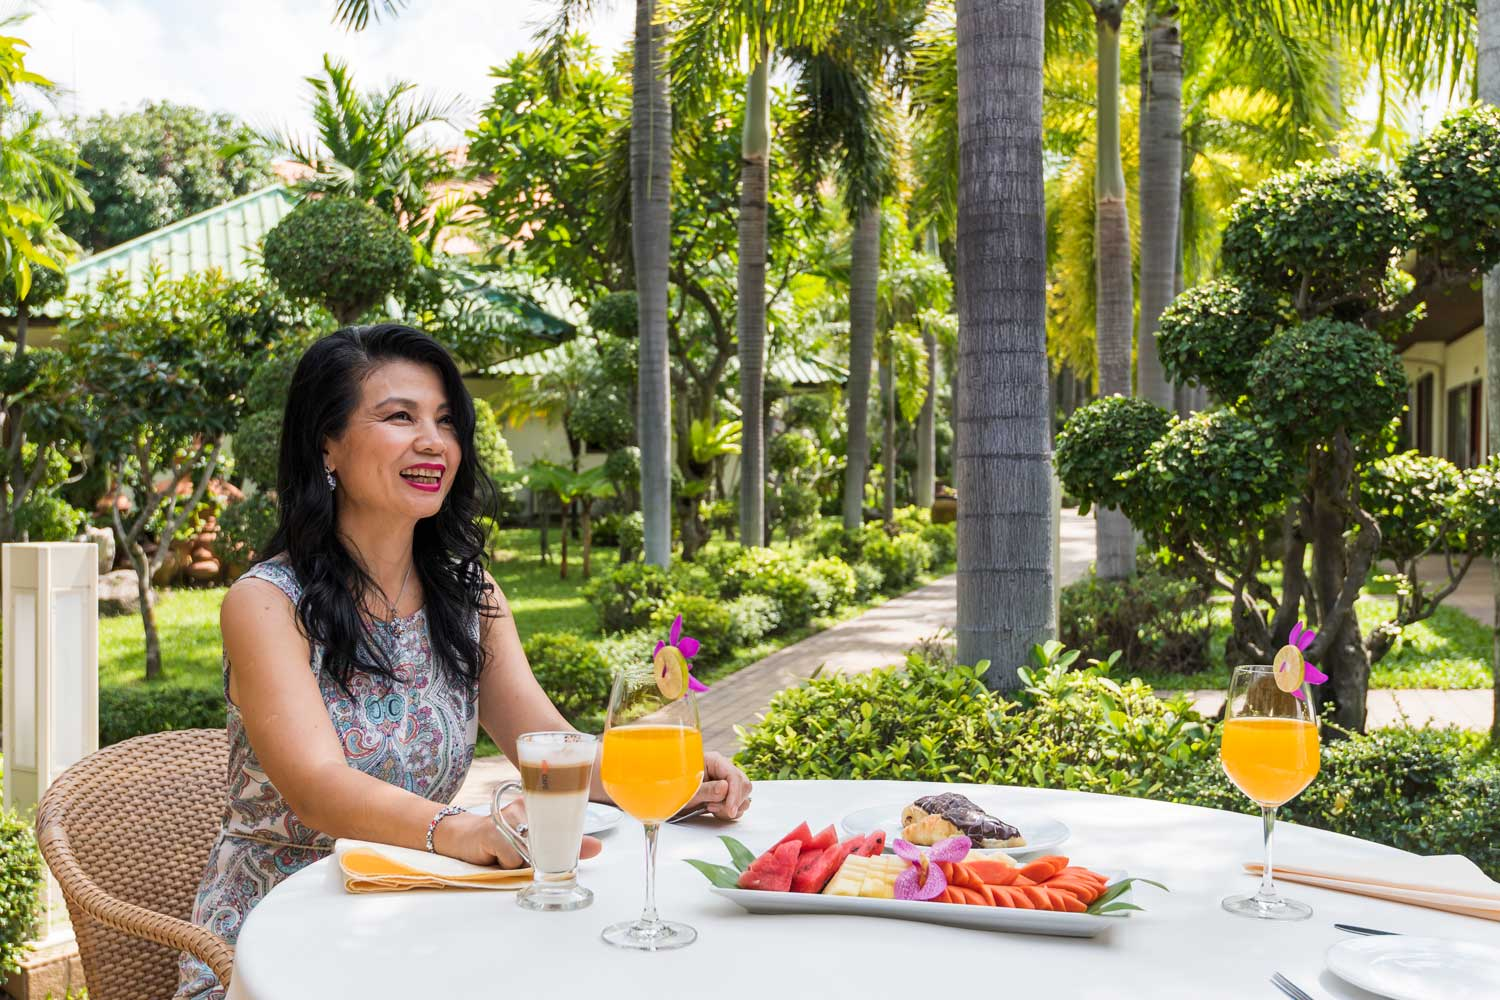 Woman enjoying breakfast on a table in the garden of the Thai Garden Resort in Pattaya, Thailand